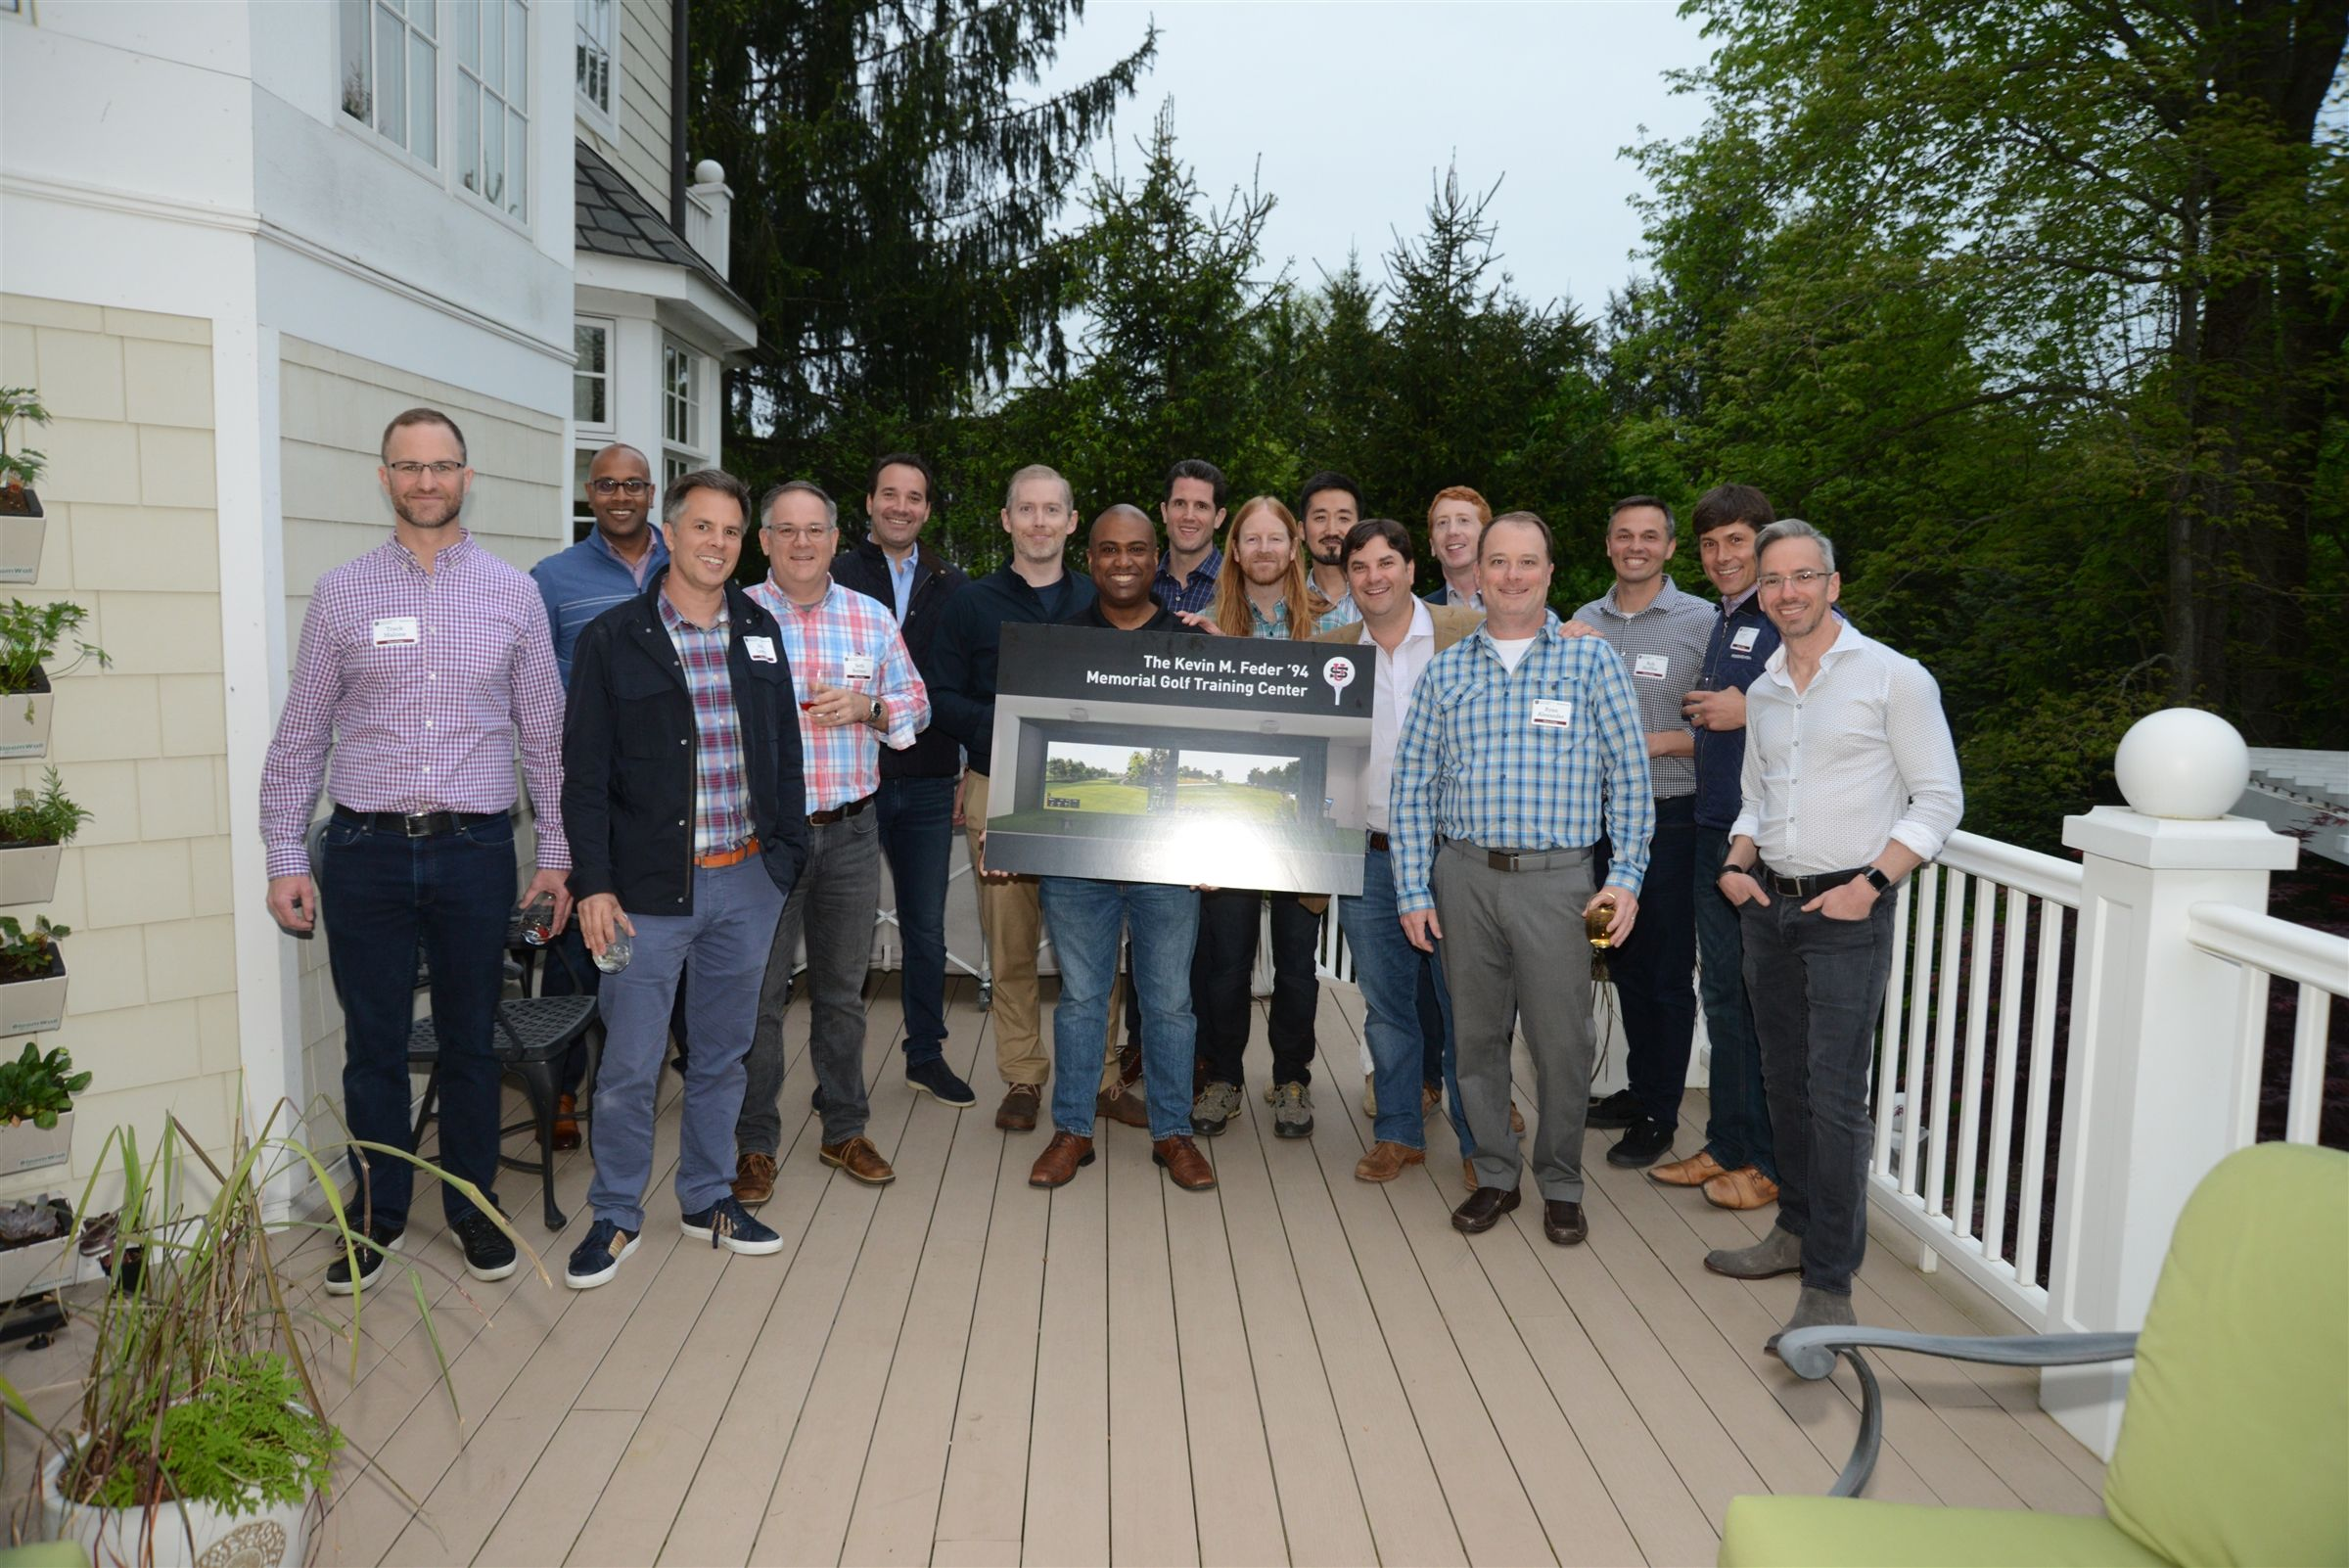 Riddi and Andy Kline hosted the Class of 1994 at their home for their 25th Reunion.  The class donated funds to construct the Kevin M. Feder '94 Memorial Golf Training Center at US.